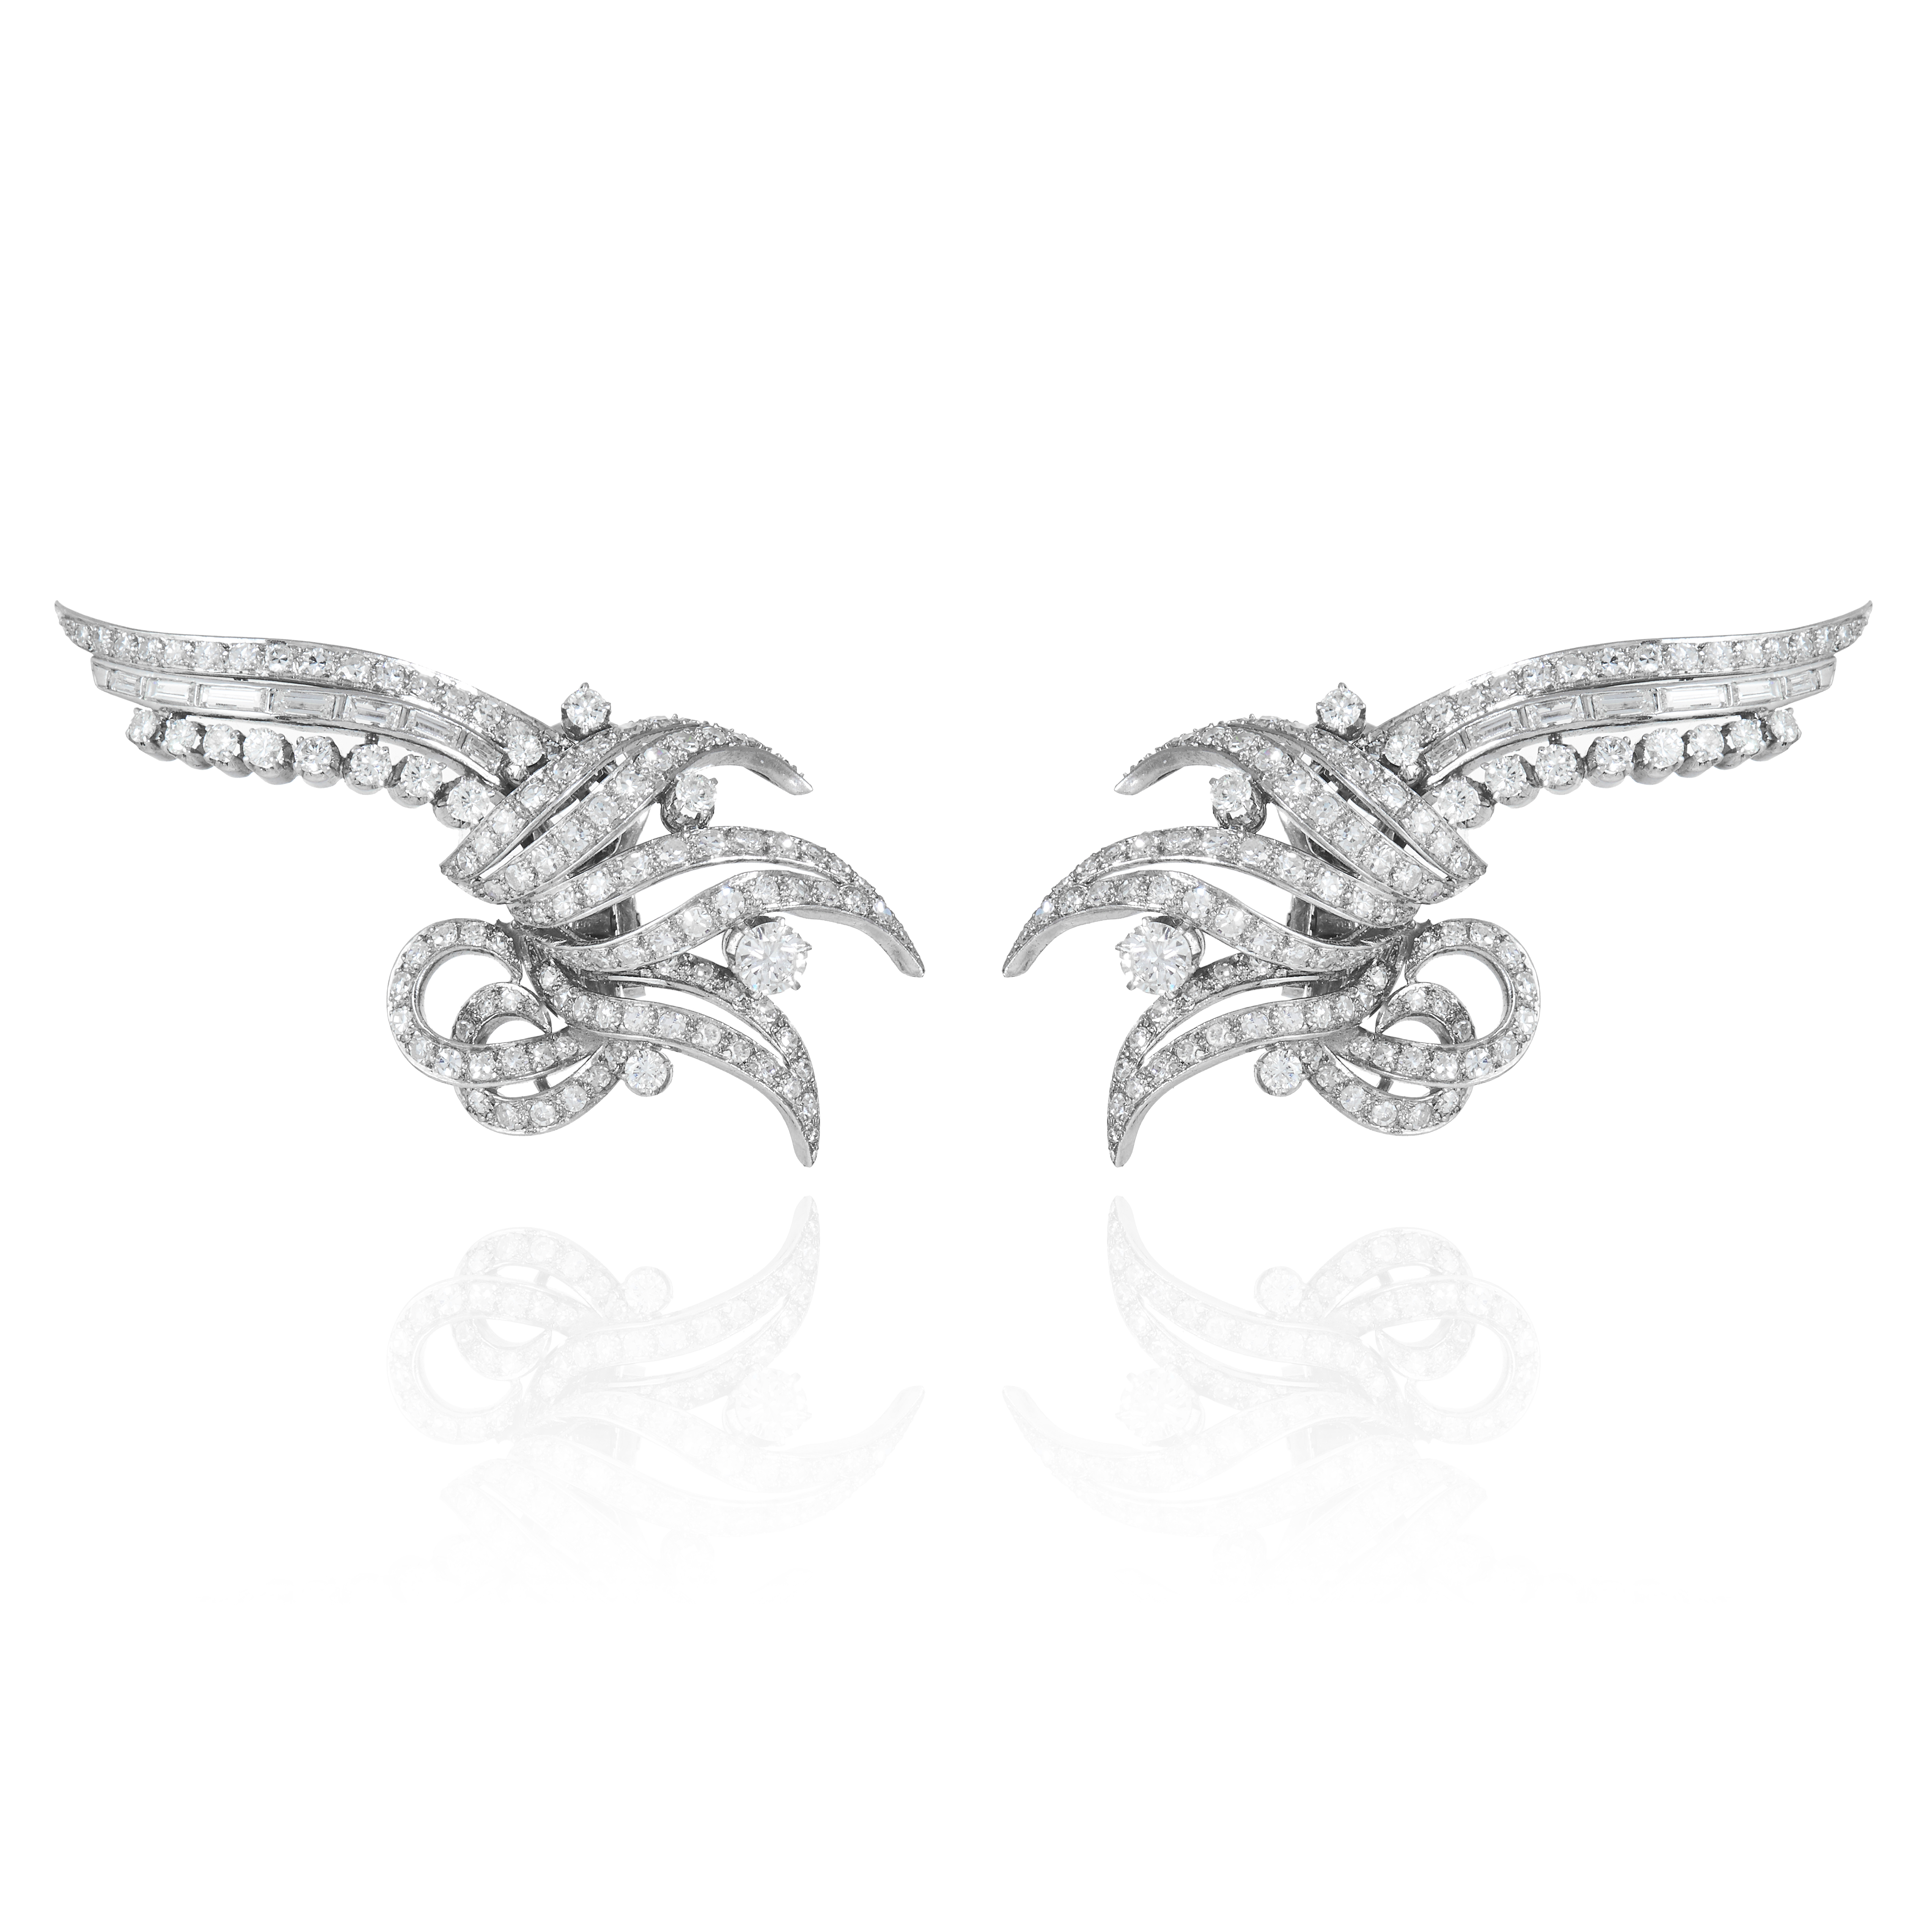 A PAIR OF VINTAGE DIAMOND EARRINGS in gold or platinum, in scrolling motif, jewelled with round